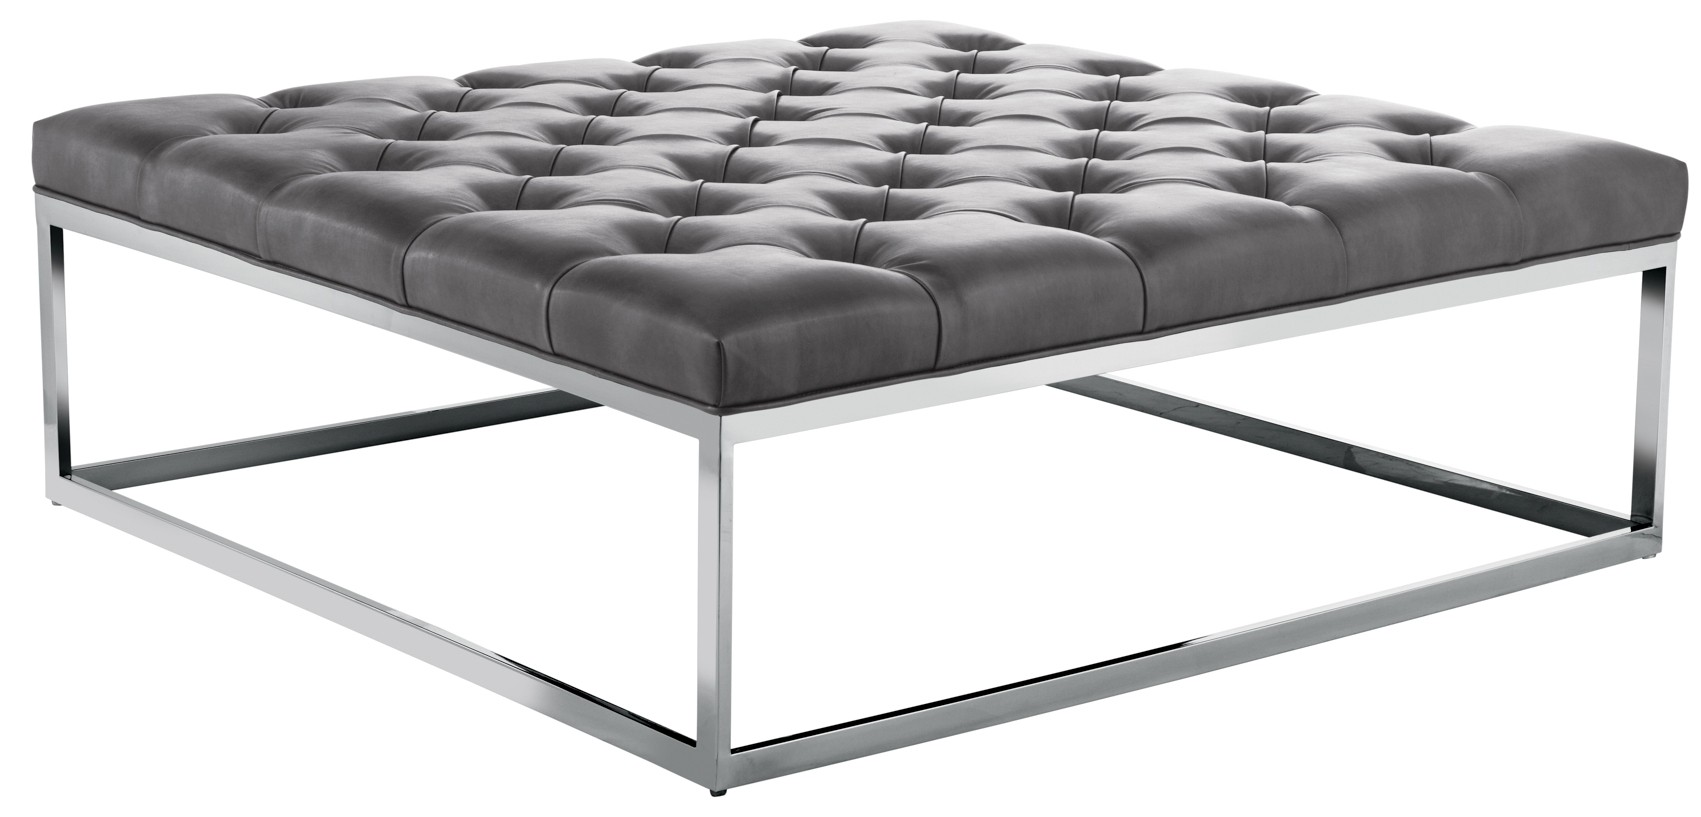 sutton square ottoman large in grey nobility from sunpan (34008